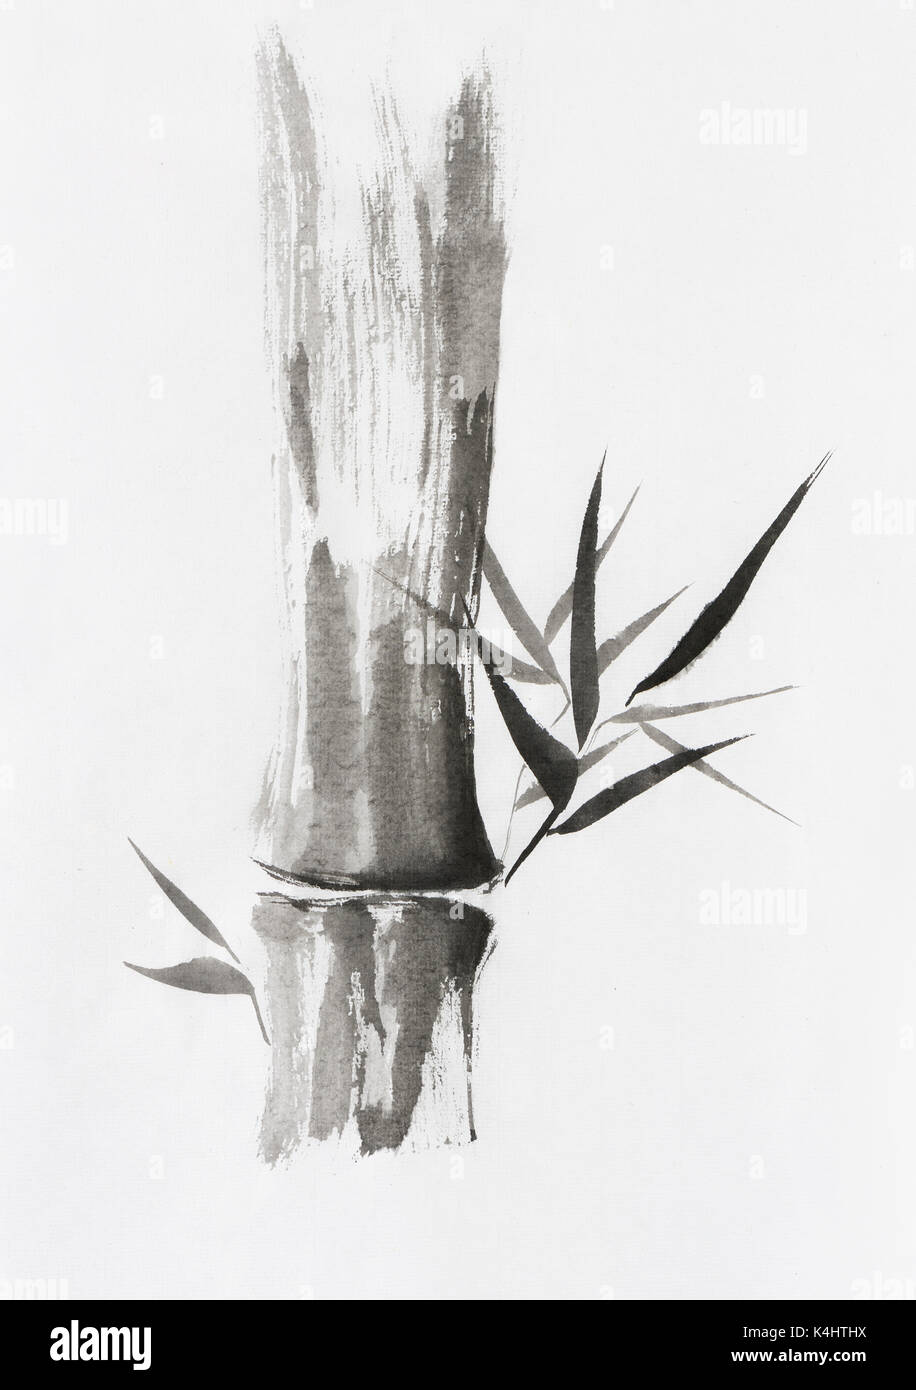 Beautiful Zen painting of bamboo stalk and leaves, Sumi-e, Japanese black ink on rice paper painting fine art - Stock Image